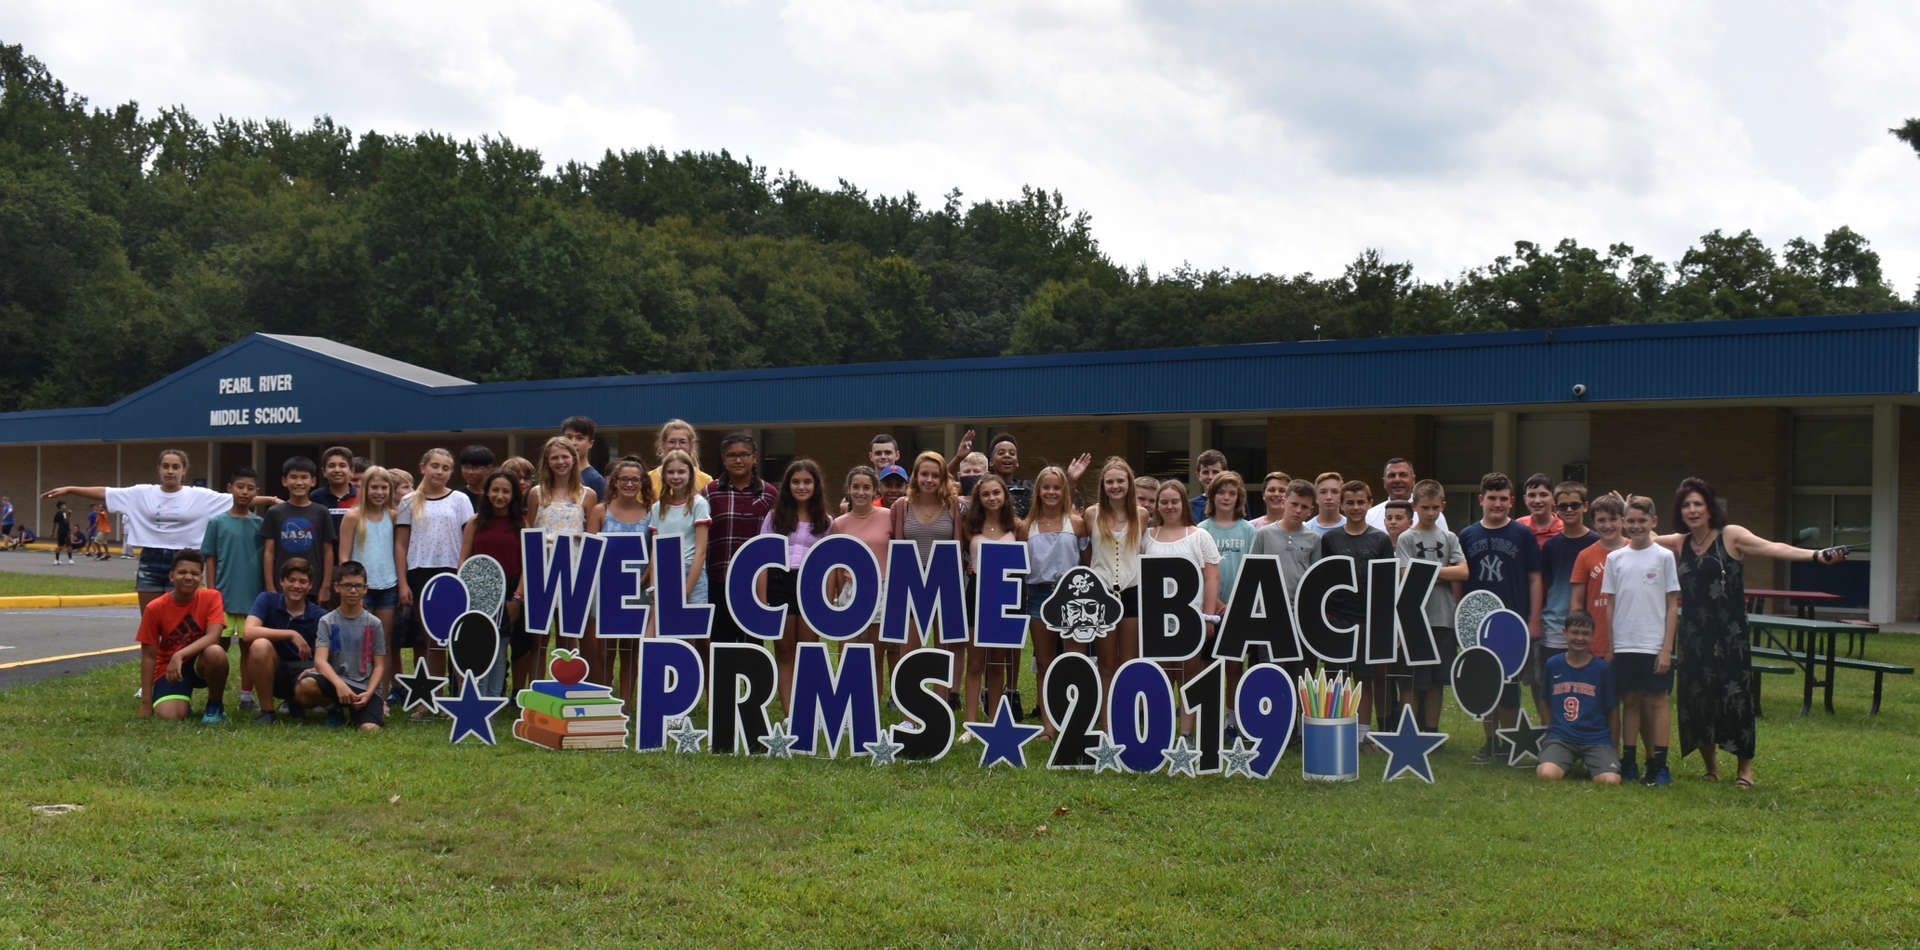 MS students and welcome sign